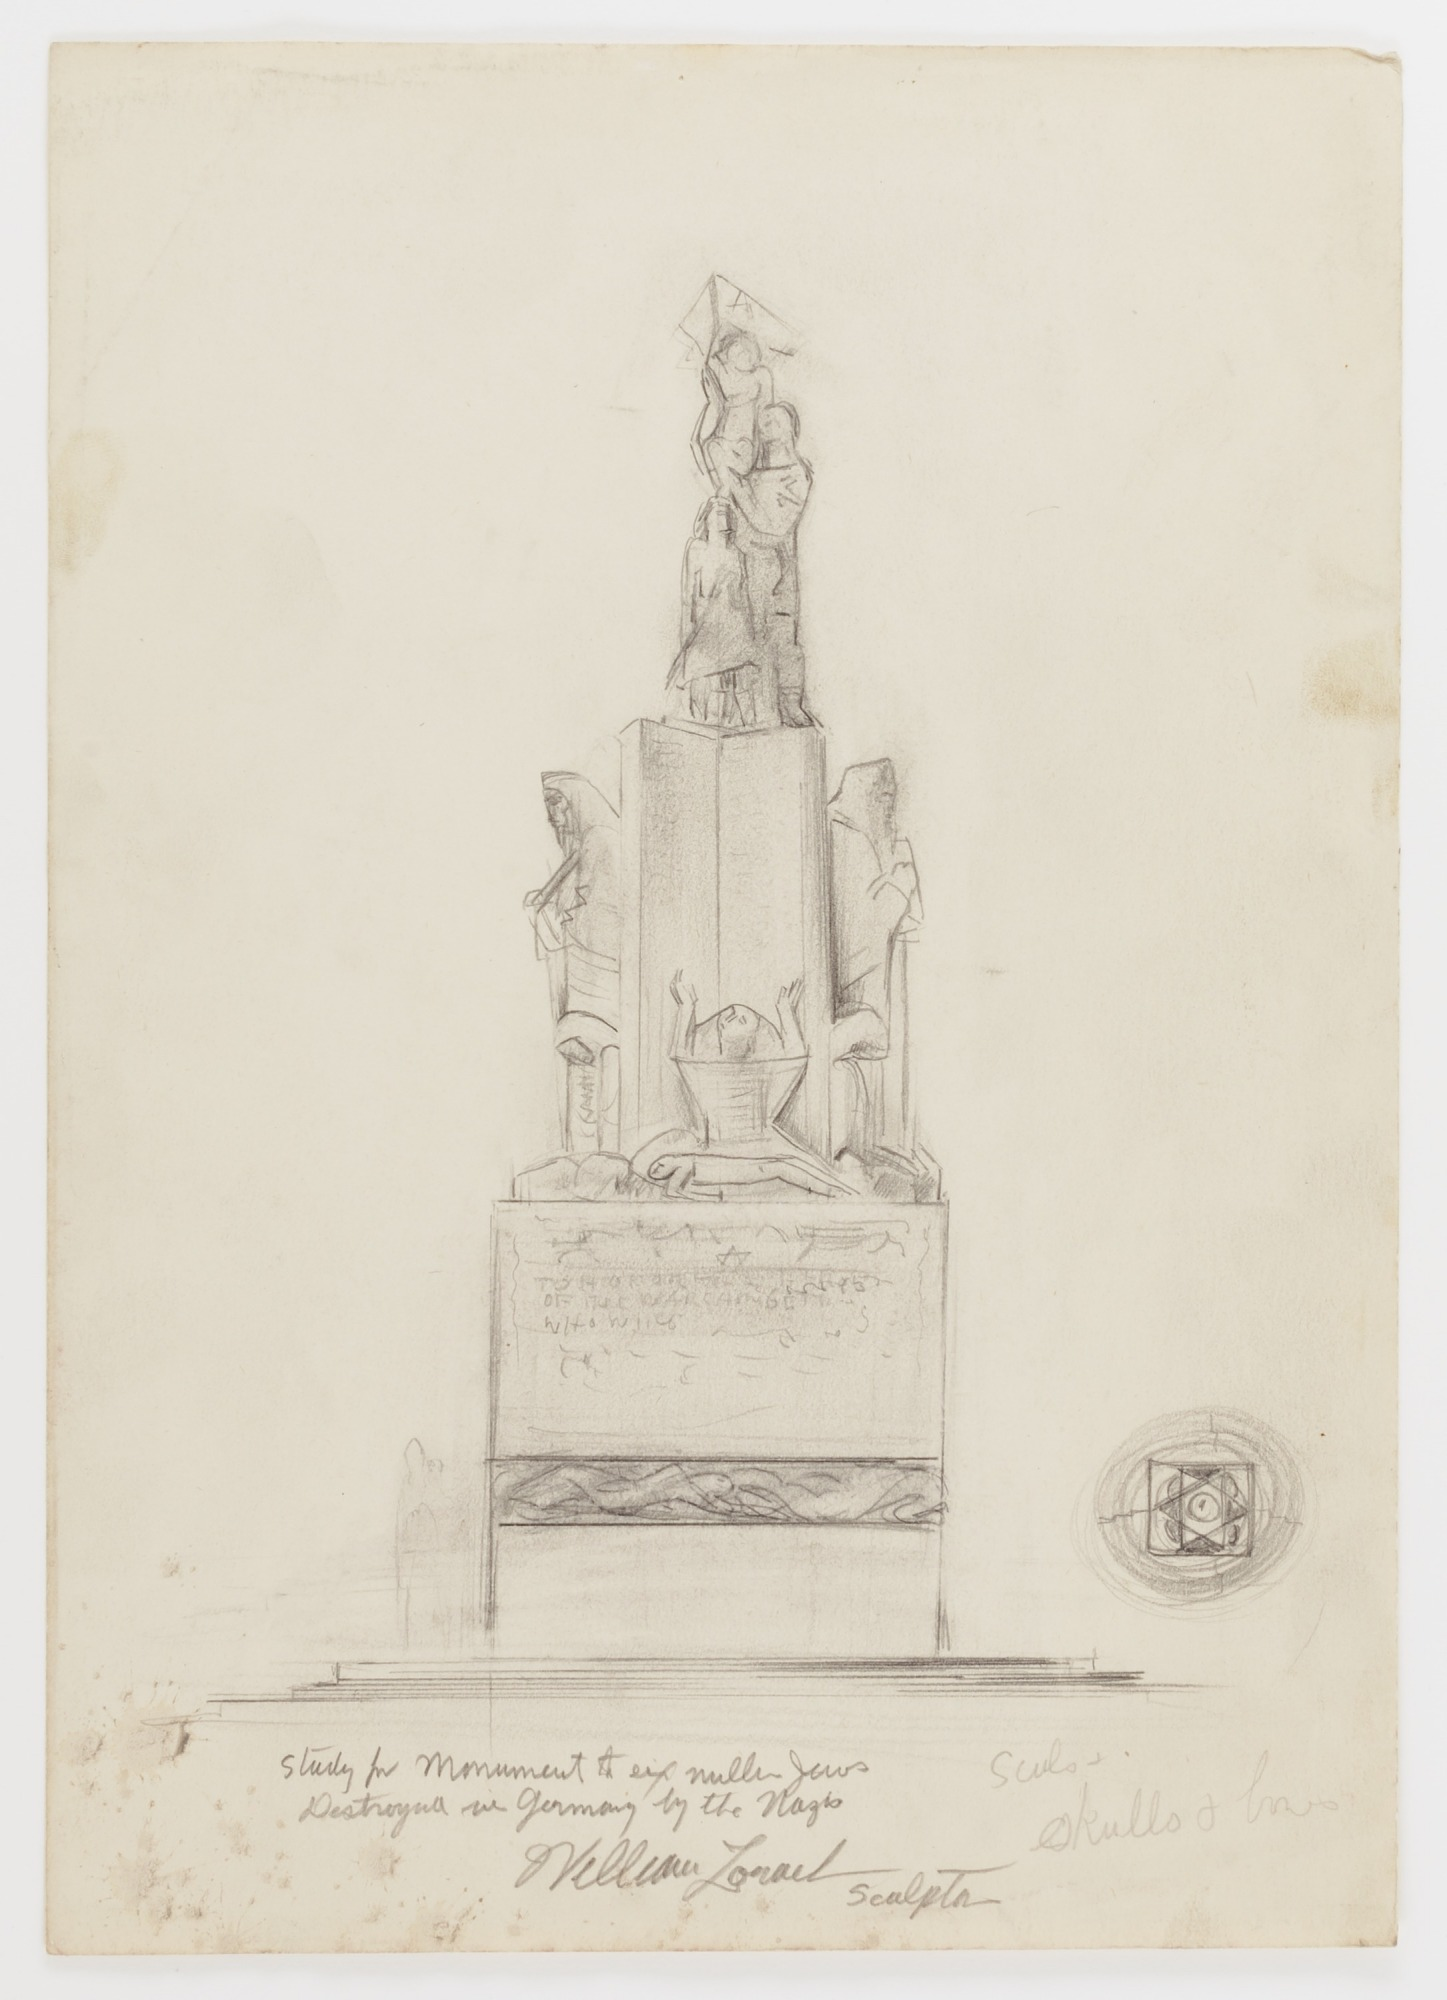 (Untitled) (study for Monument to Six Million Jews Destroyed in Germany by the Nazis) #12